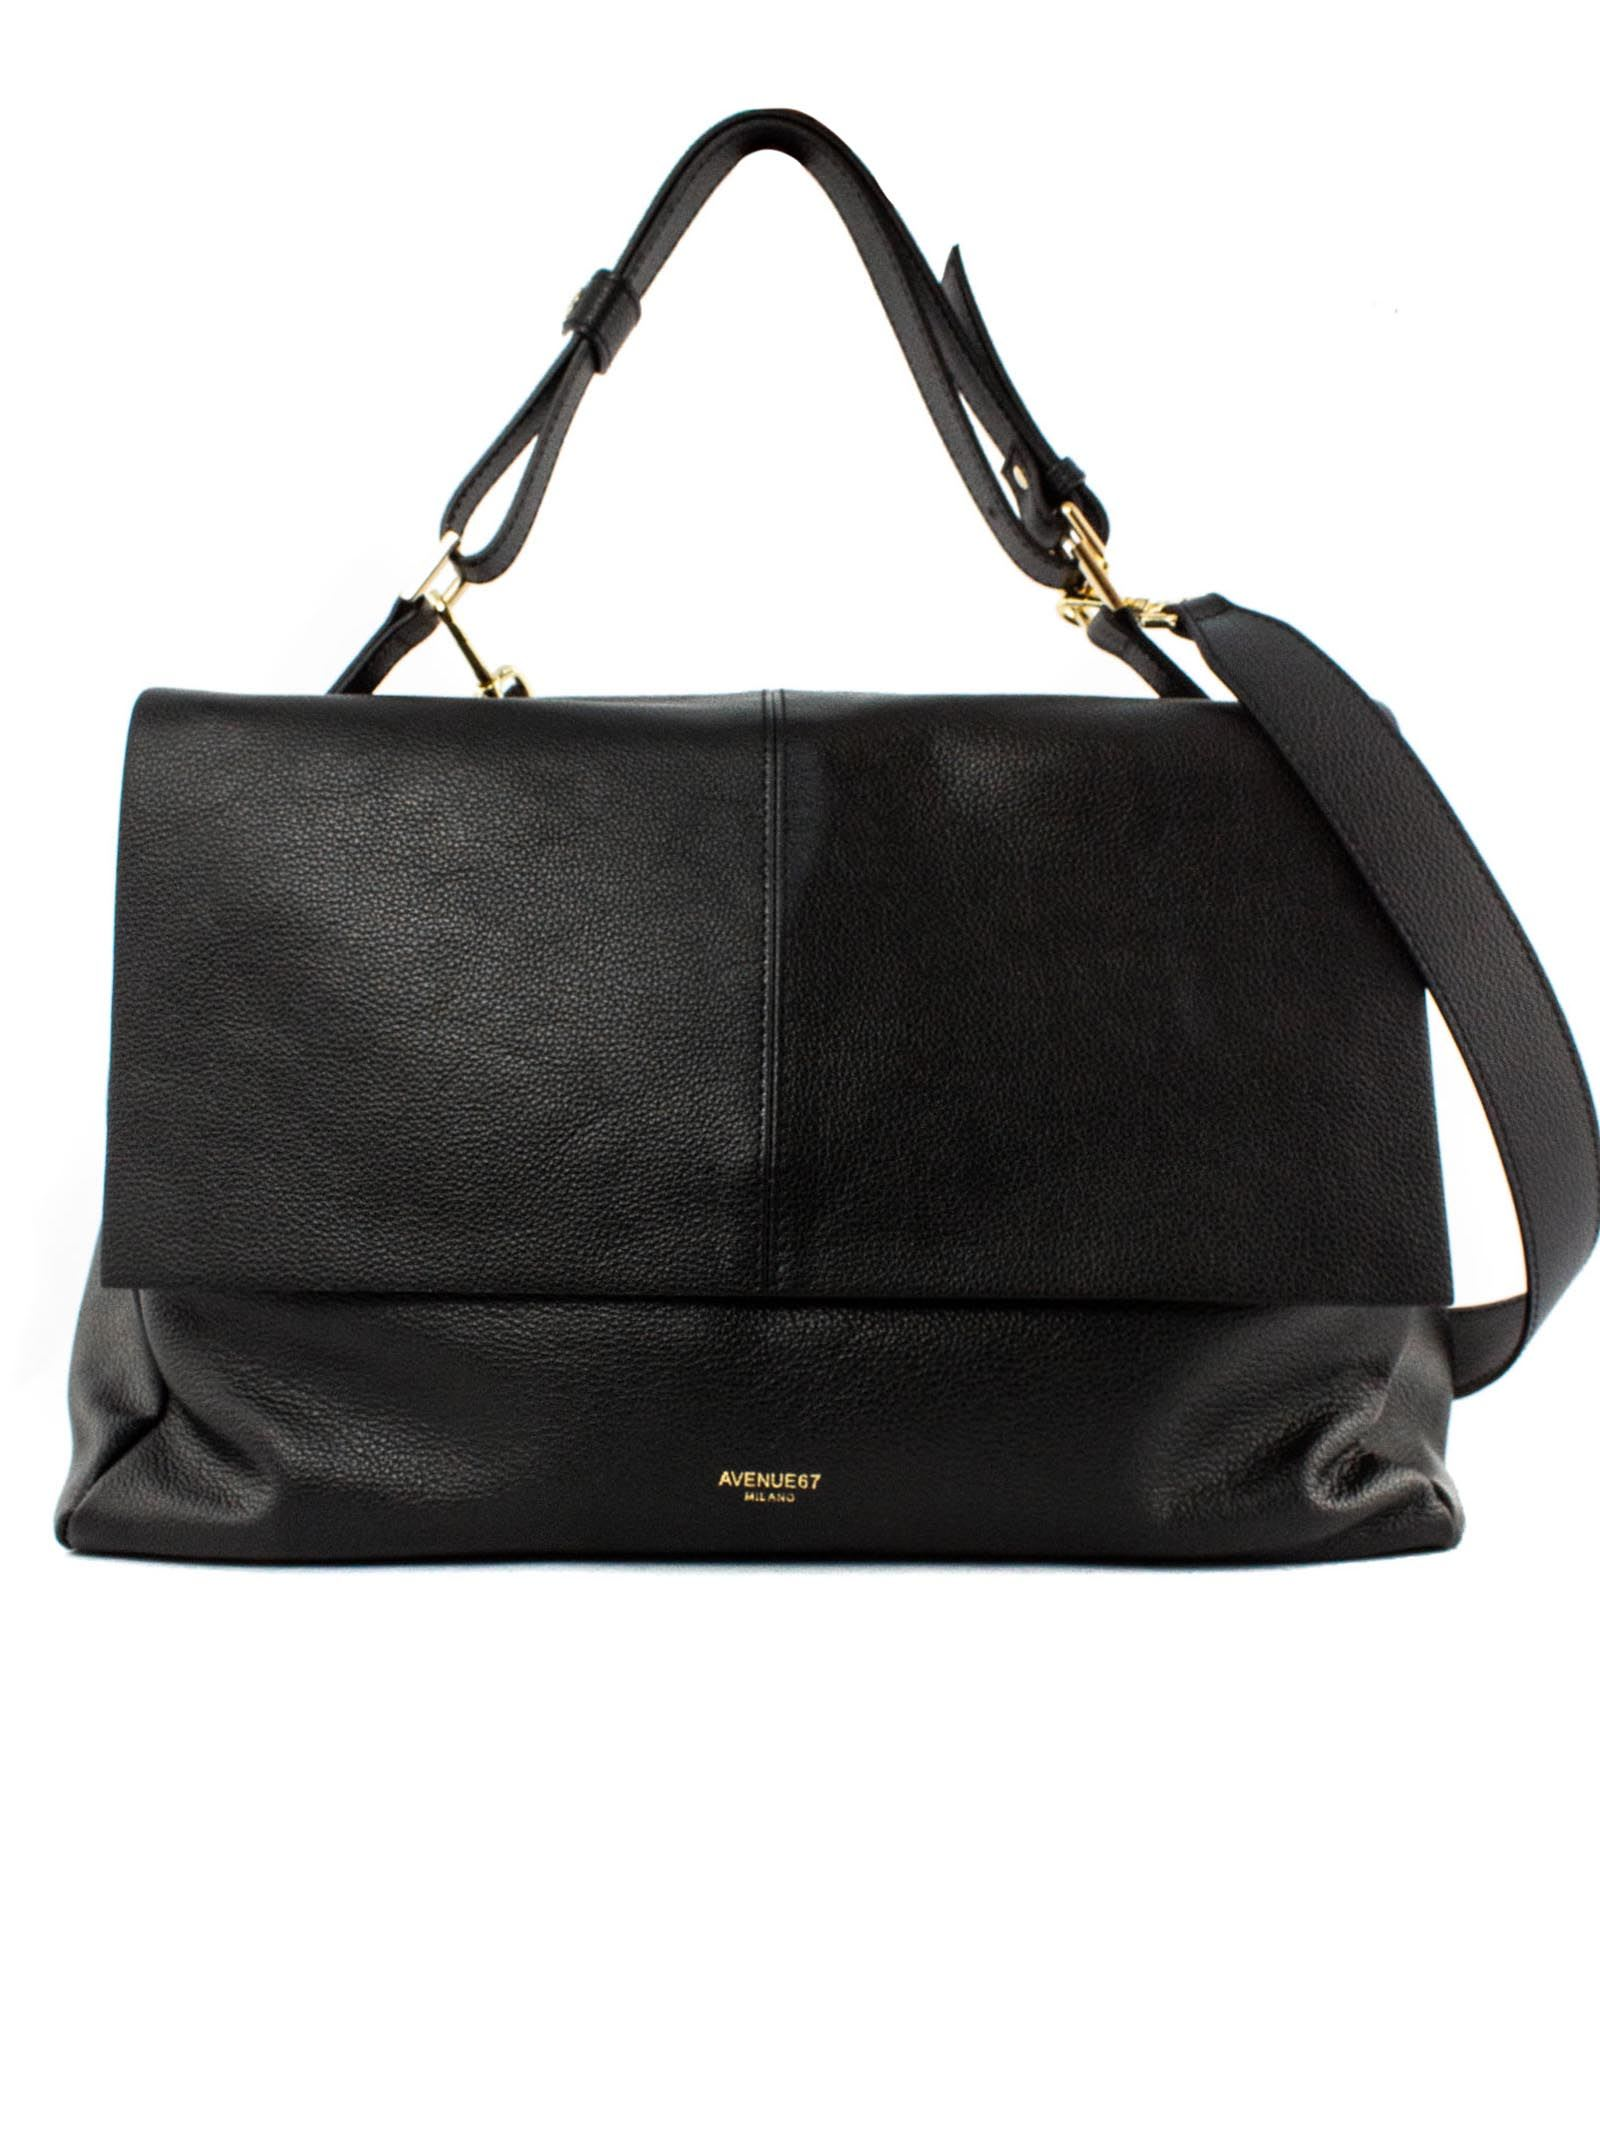 Elettra Giant Bag In Soft Black Leather